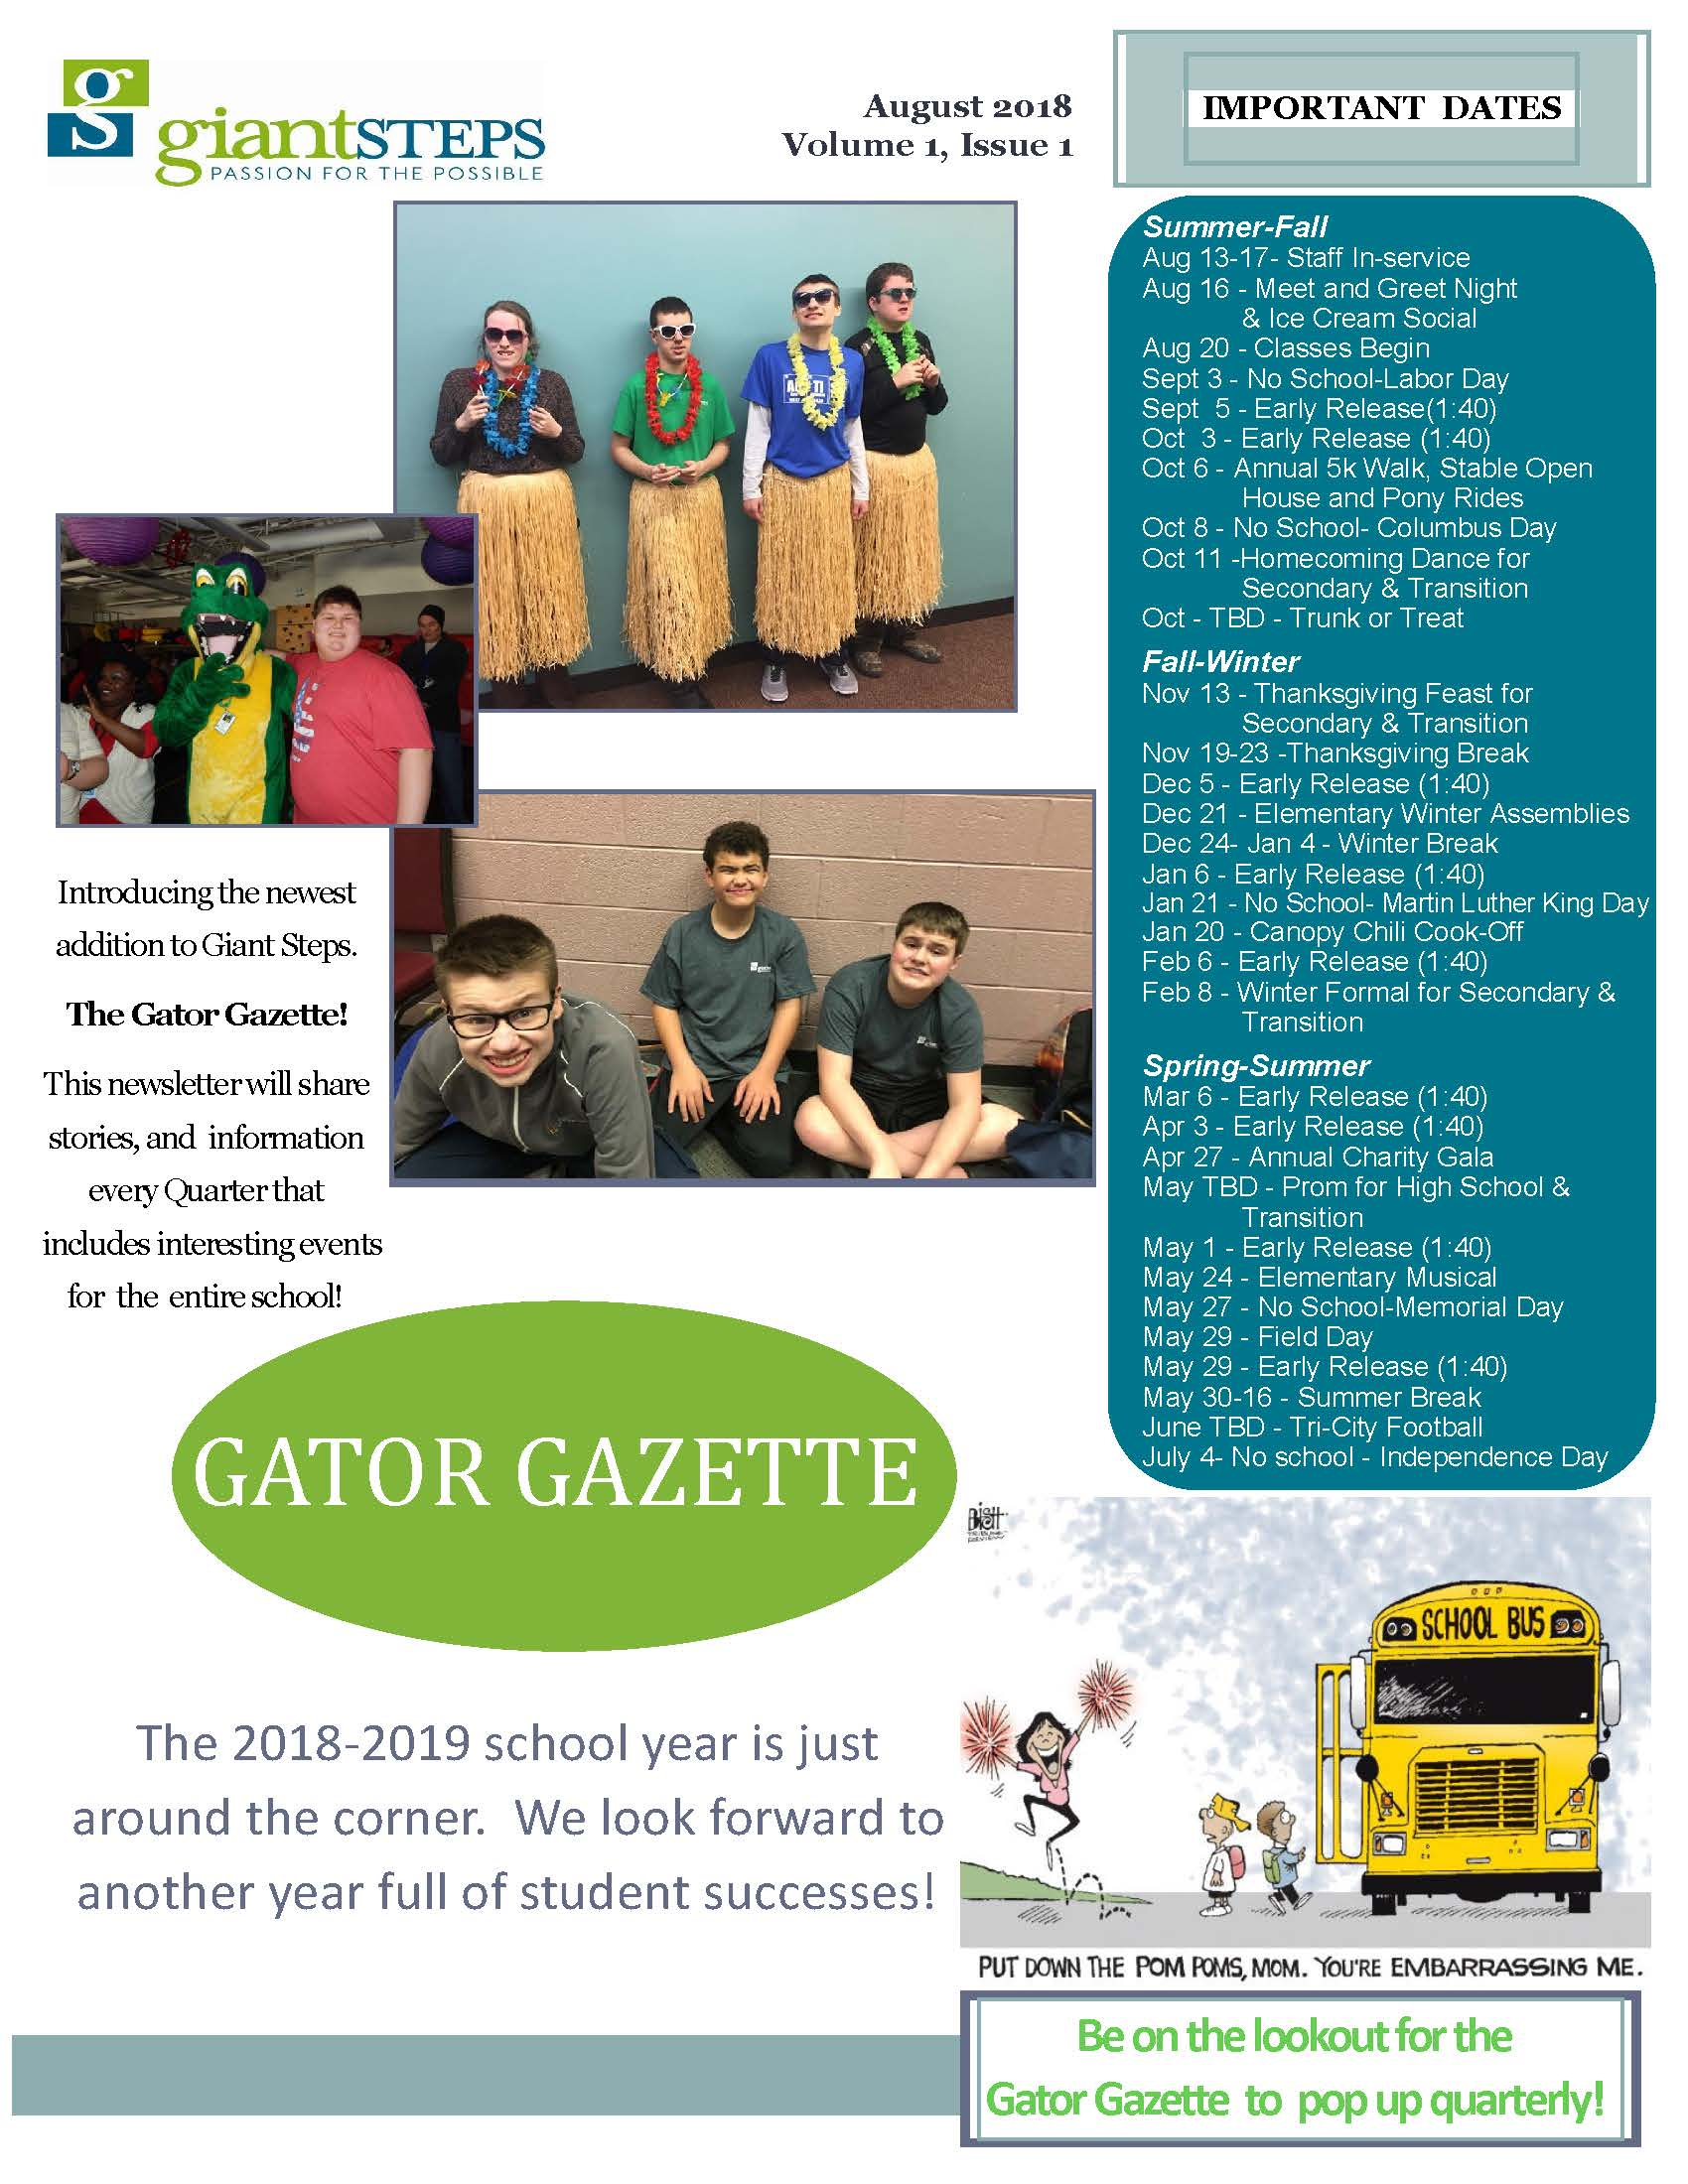 Gator Gazette Issue 1, Volume 1 Cover